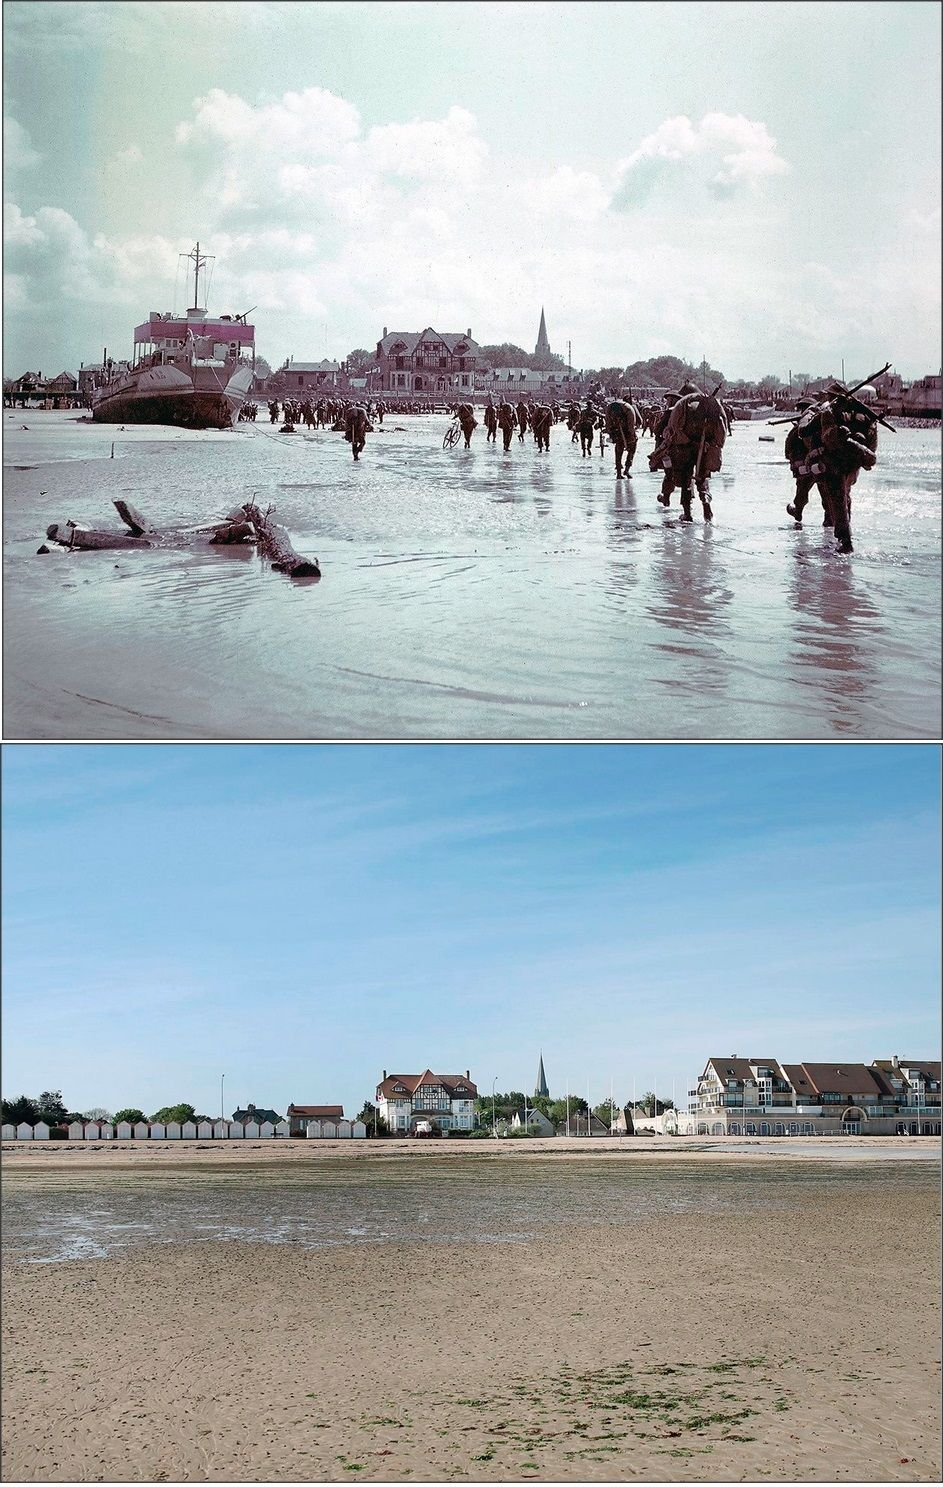 the juno beach invasion essay D-day facts for kids and the normandy landings at omaha beach  summary  and definition: d-day in ww2 began at 6:30am on 6 june, 1944 when american   the codename for the ww2 invasion of france was operation overlord, which  would  utah beach, sword beach, gold beach, juno beach, and omaha beach.